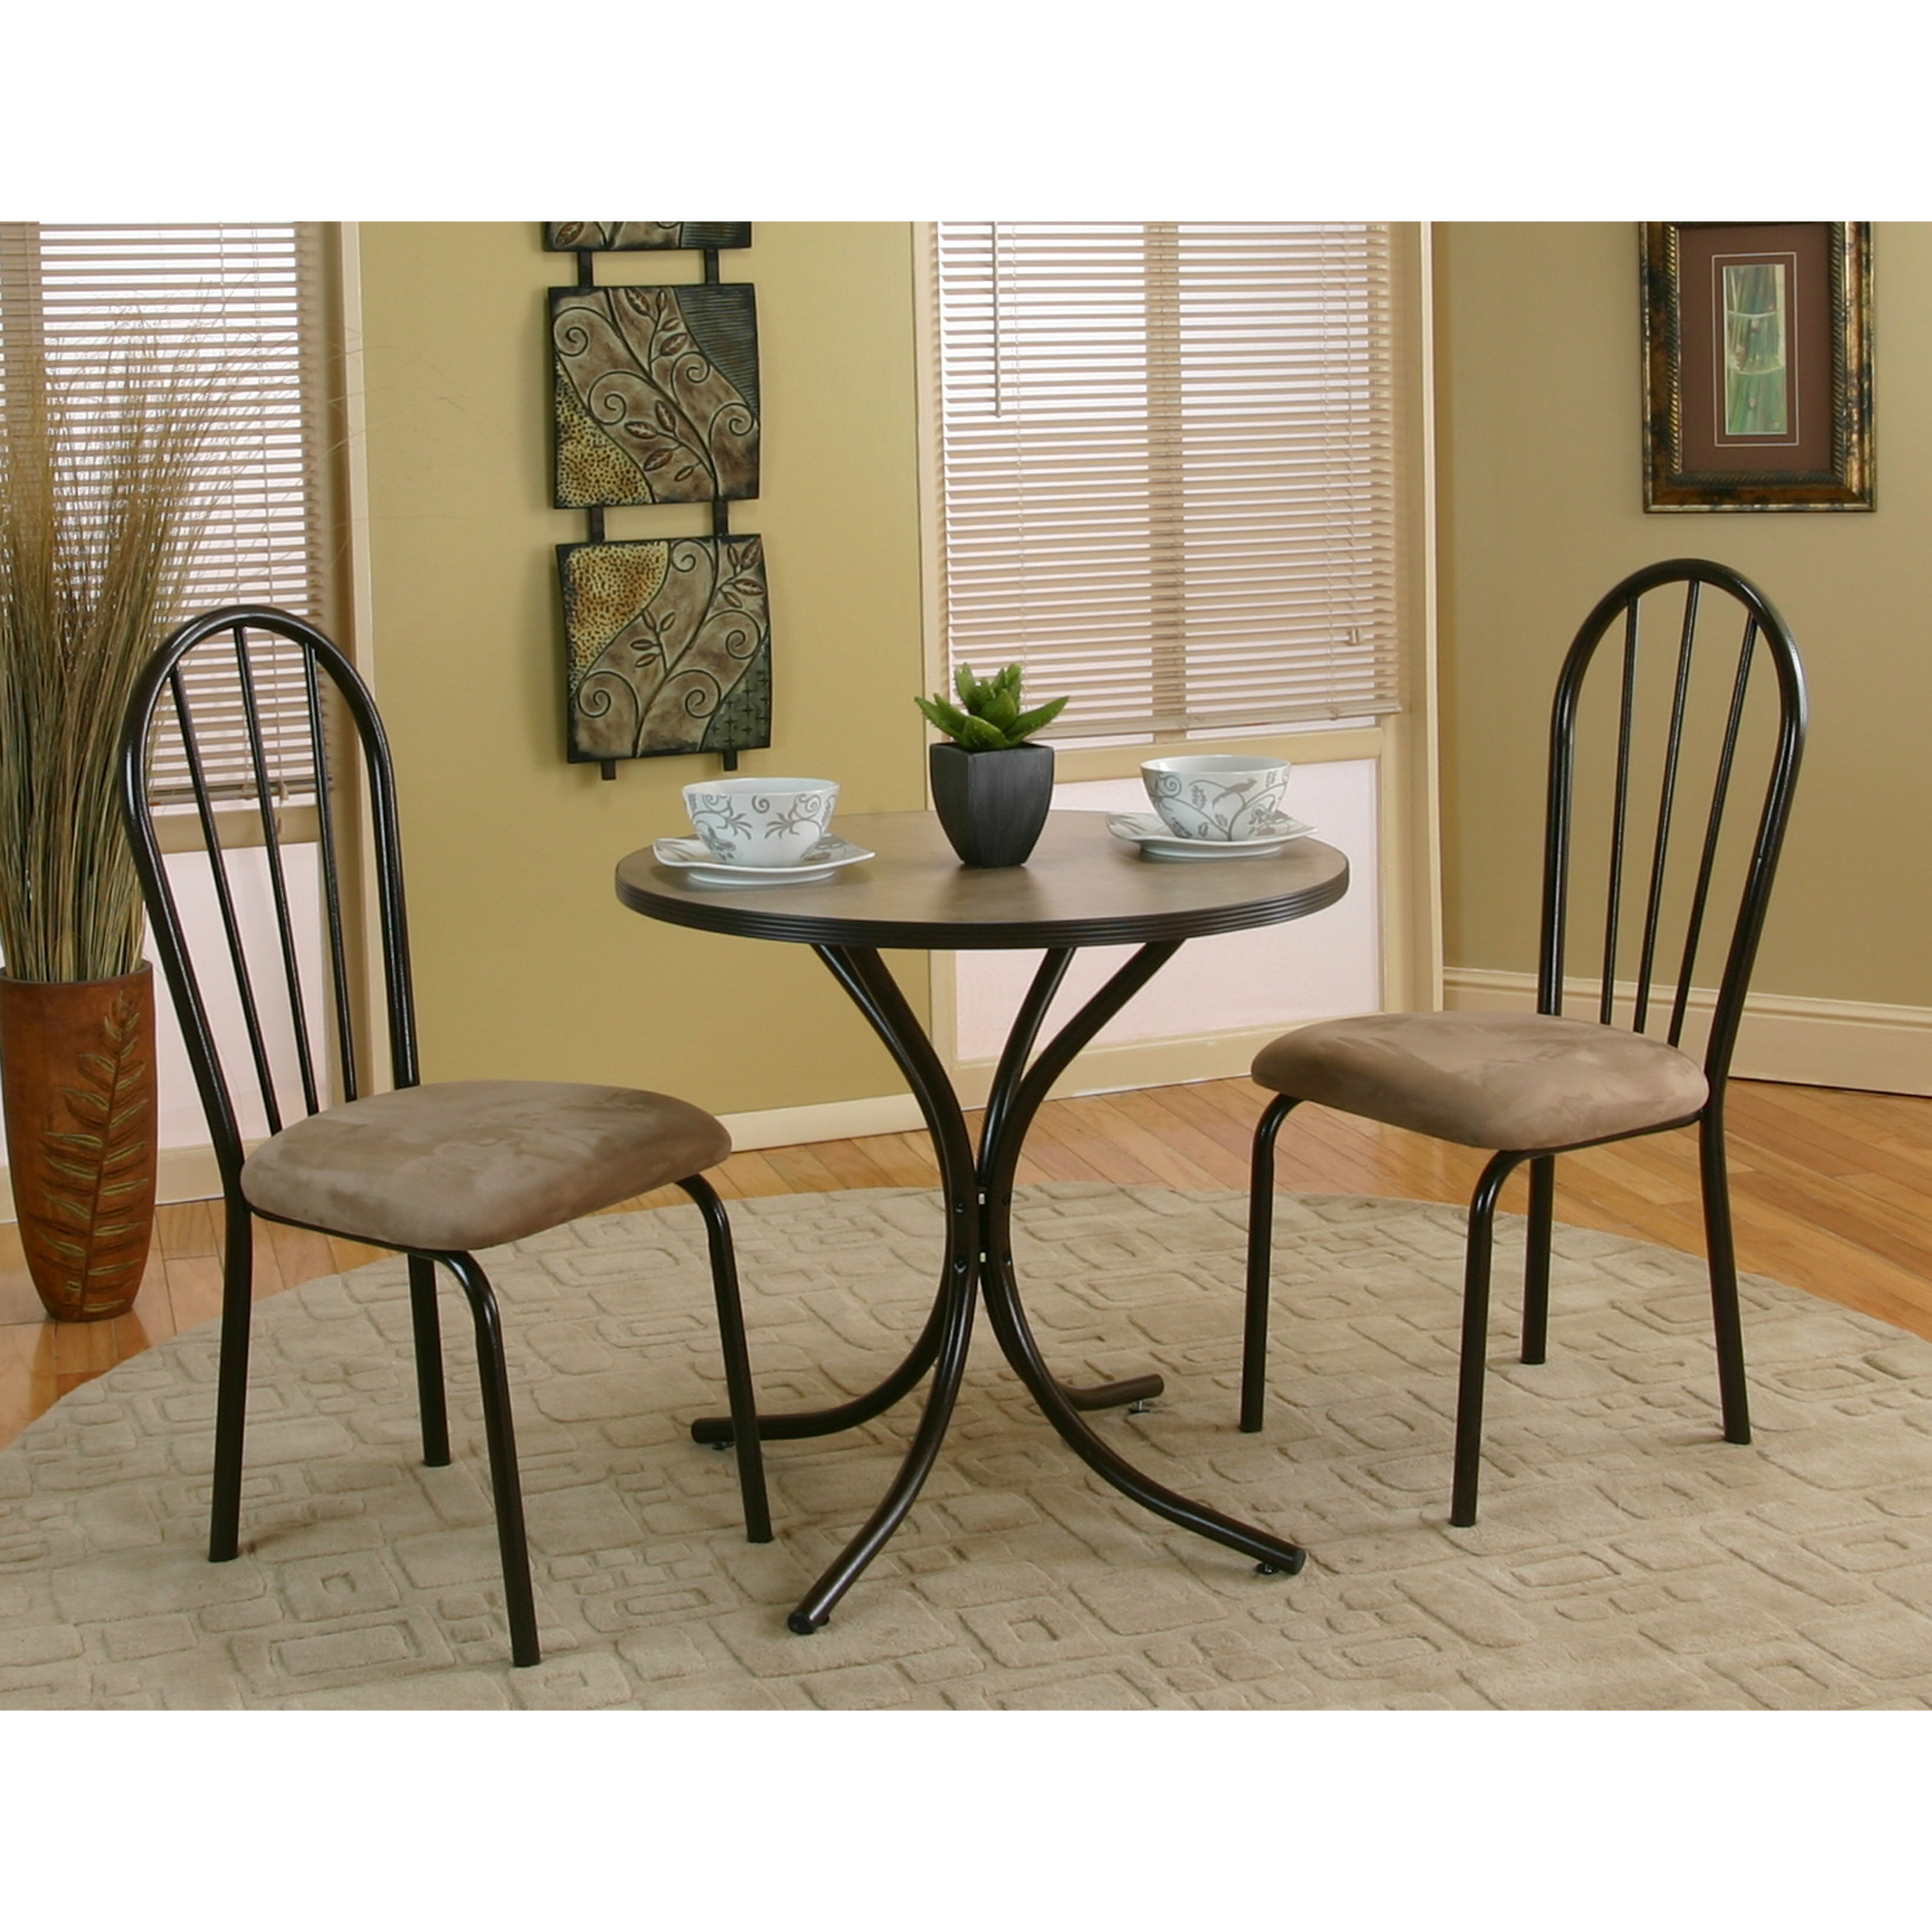 Casual Dinette Sets: Sunset Trading Casual Dining 3 Piece Dining Set & Reviews